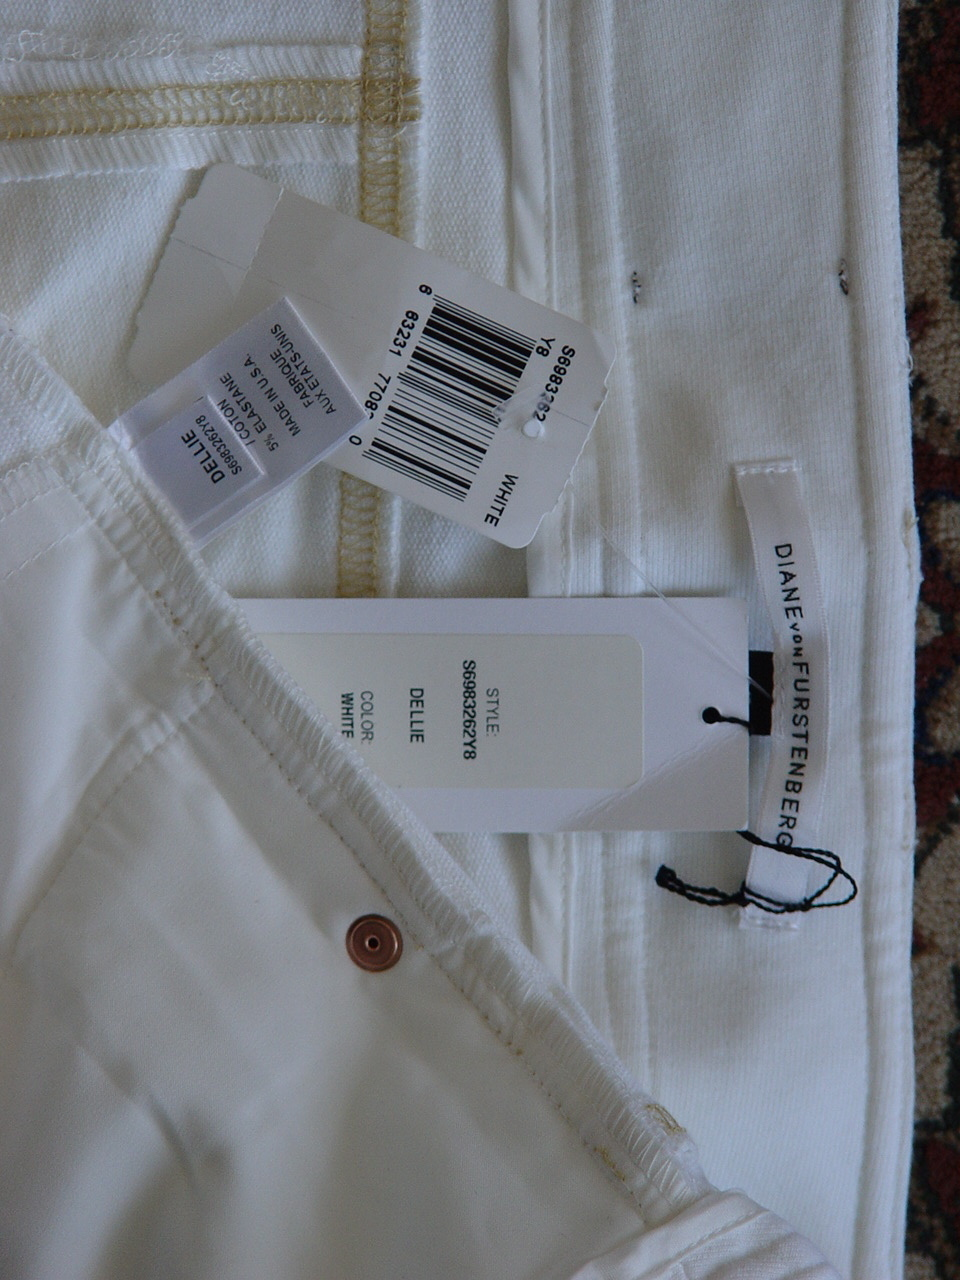 DIANE von FURSTENBERG DELLIE WHITE PANTS TROUSERS - US 12  - UK 16